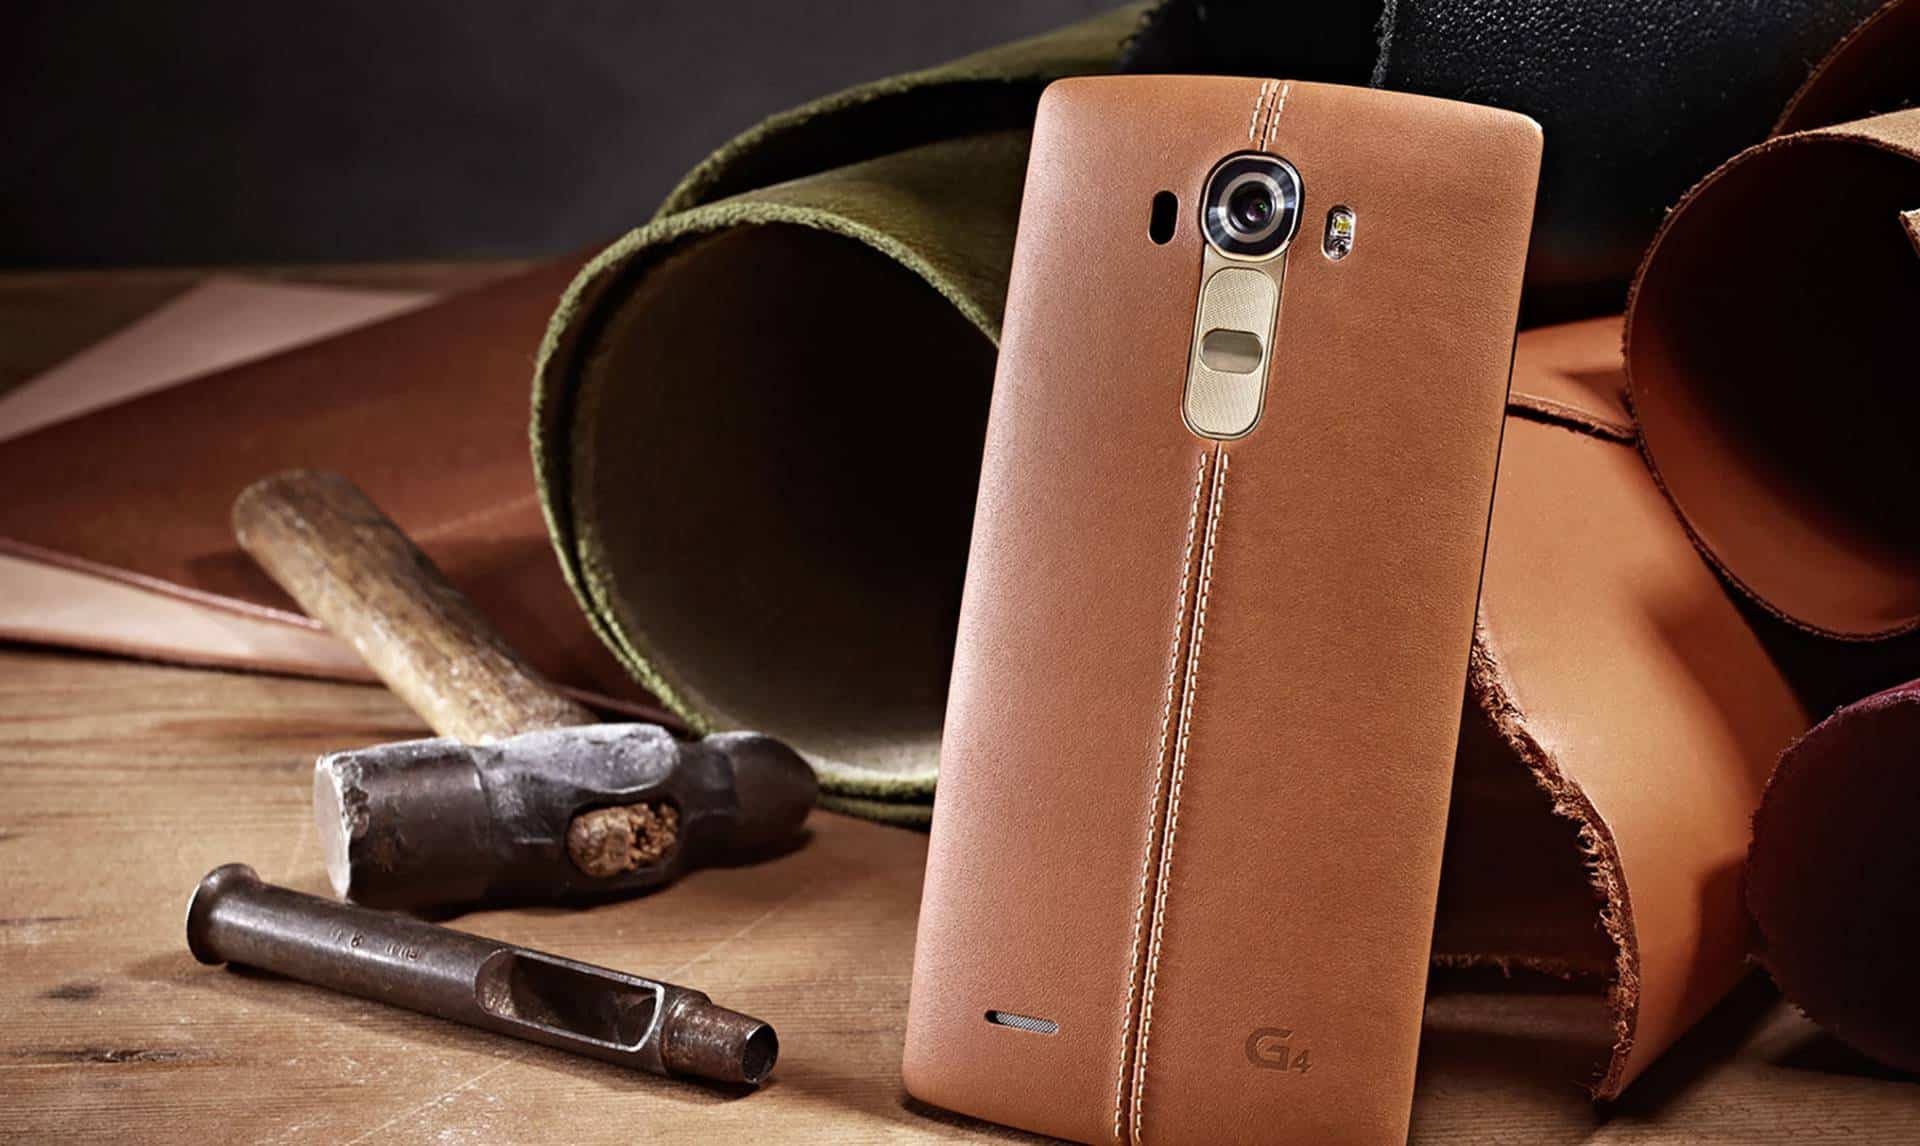 LG G4 Leather Cover Video